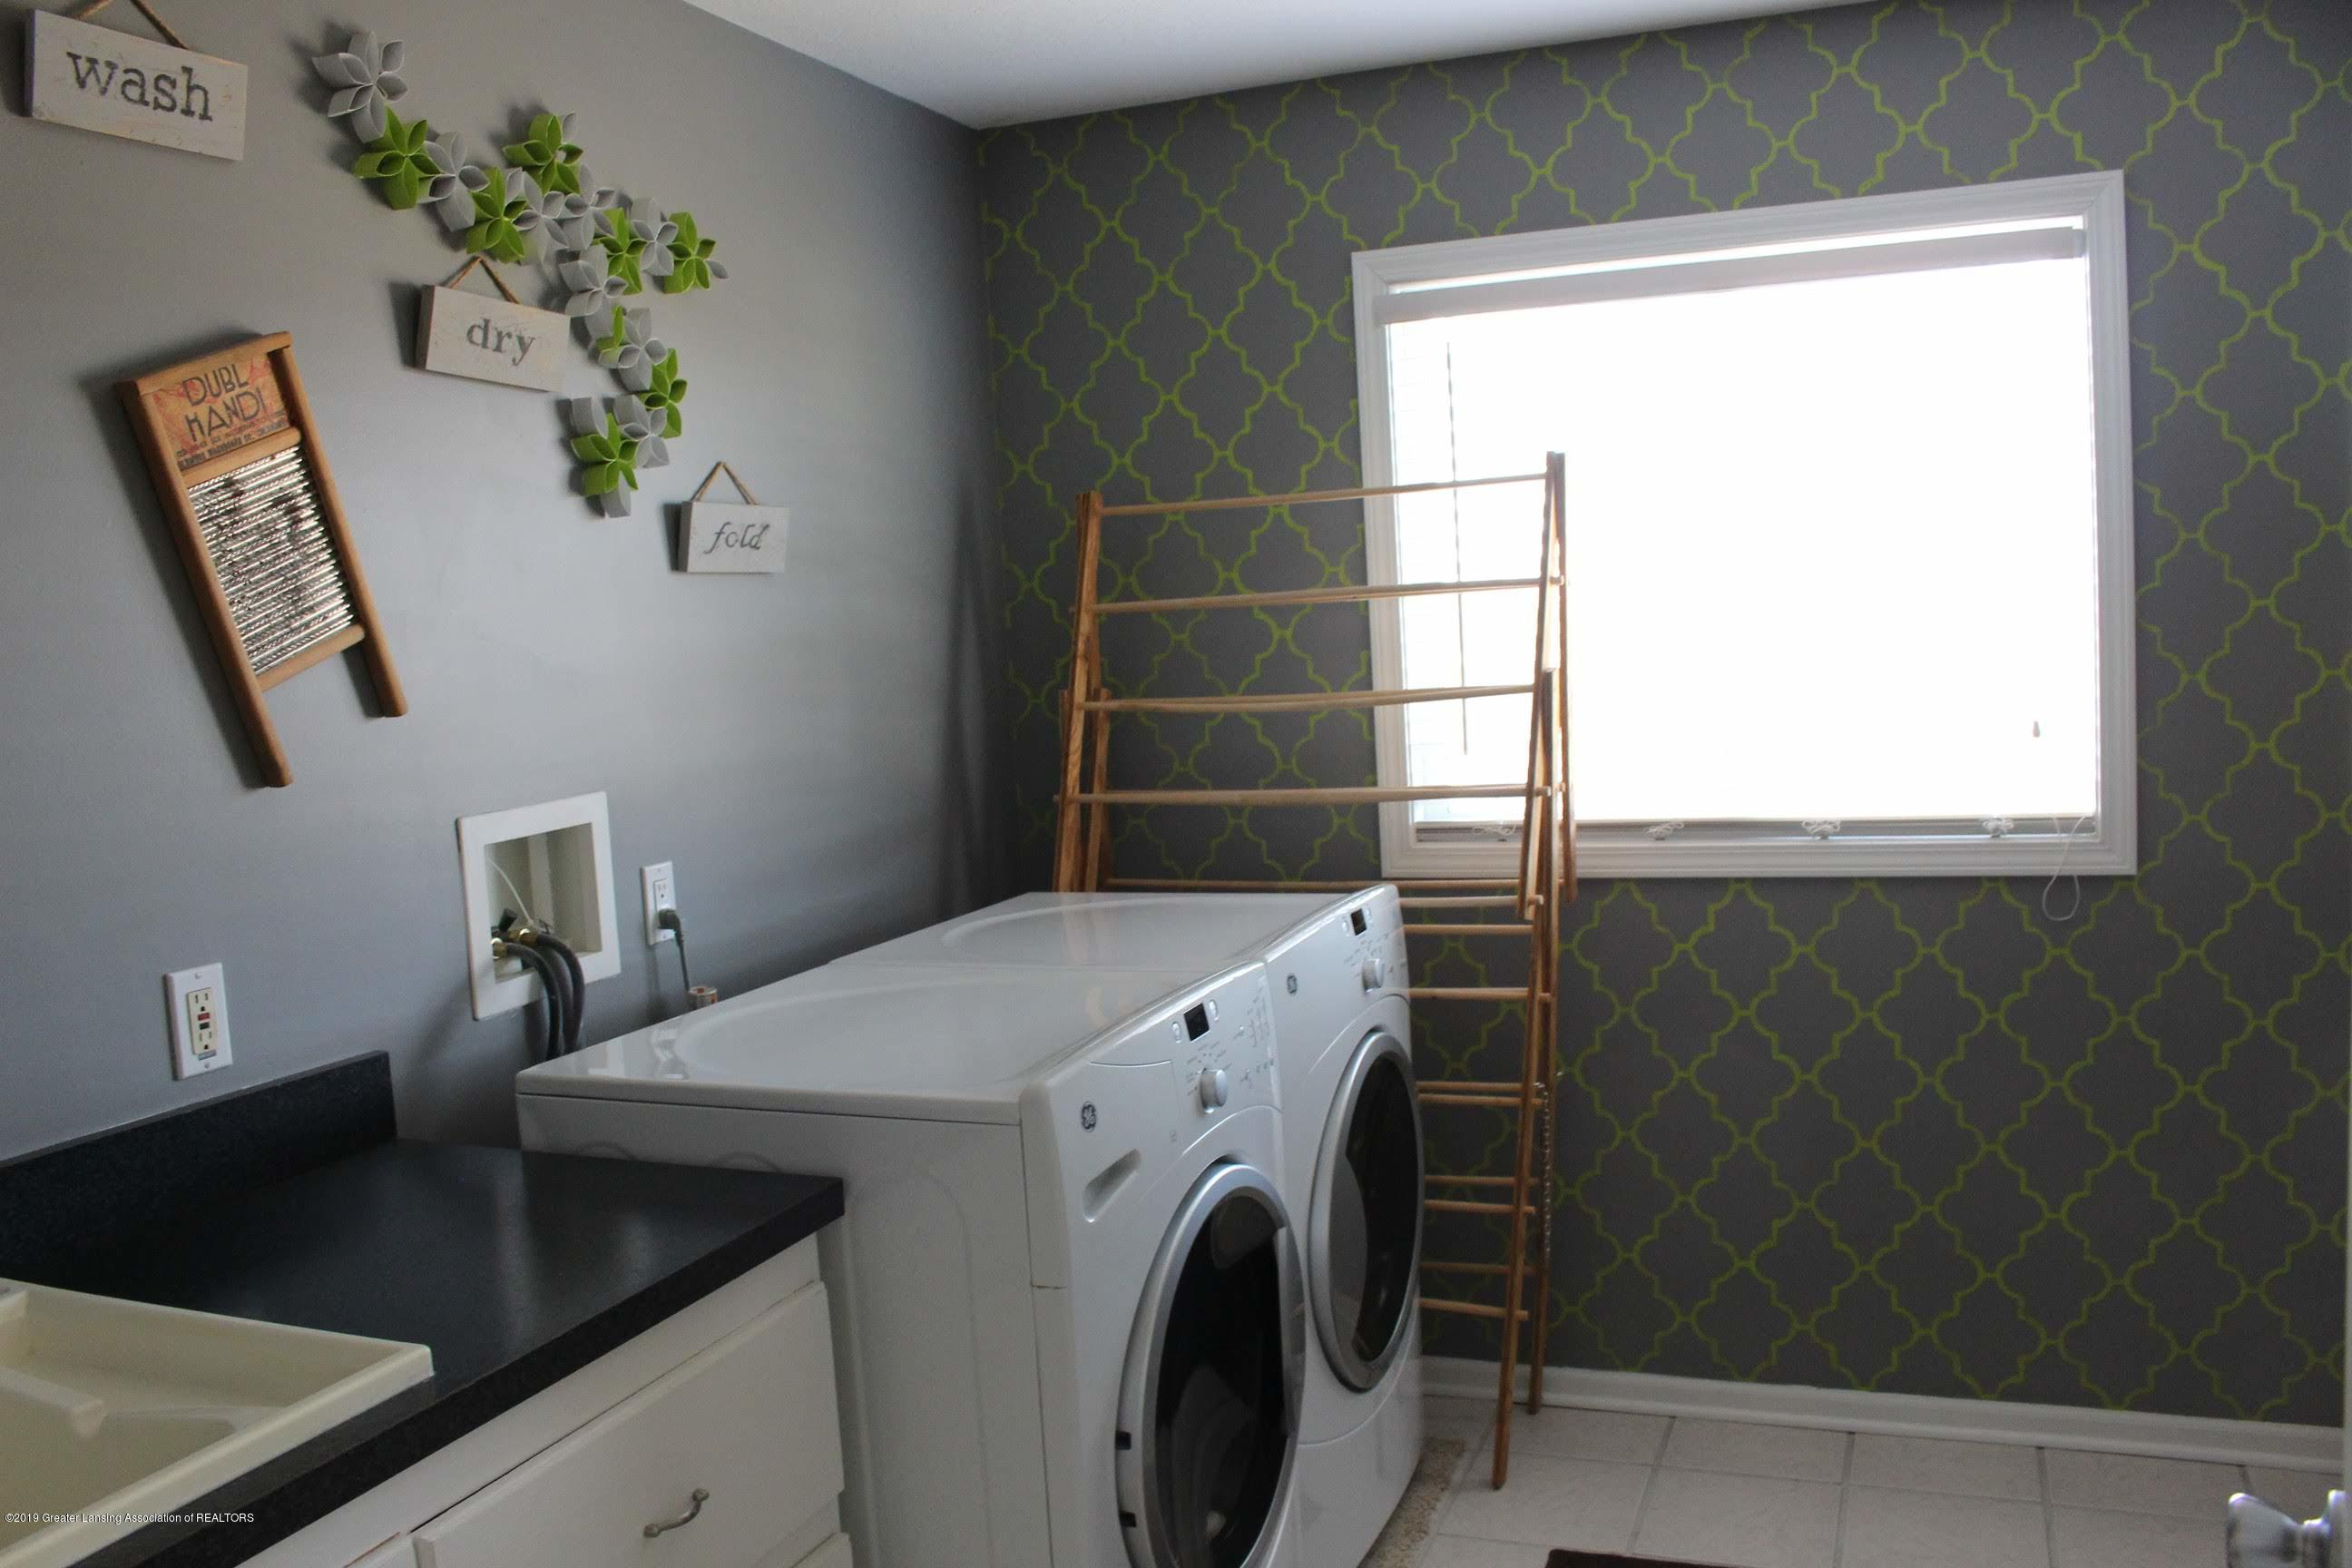 3099 E Price Rd - Laundry Room - 13